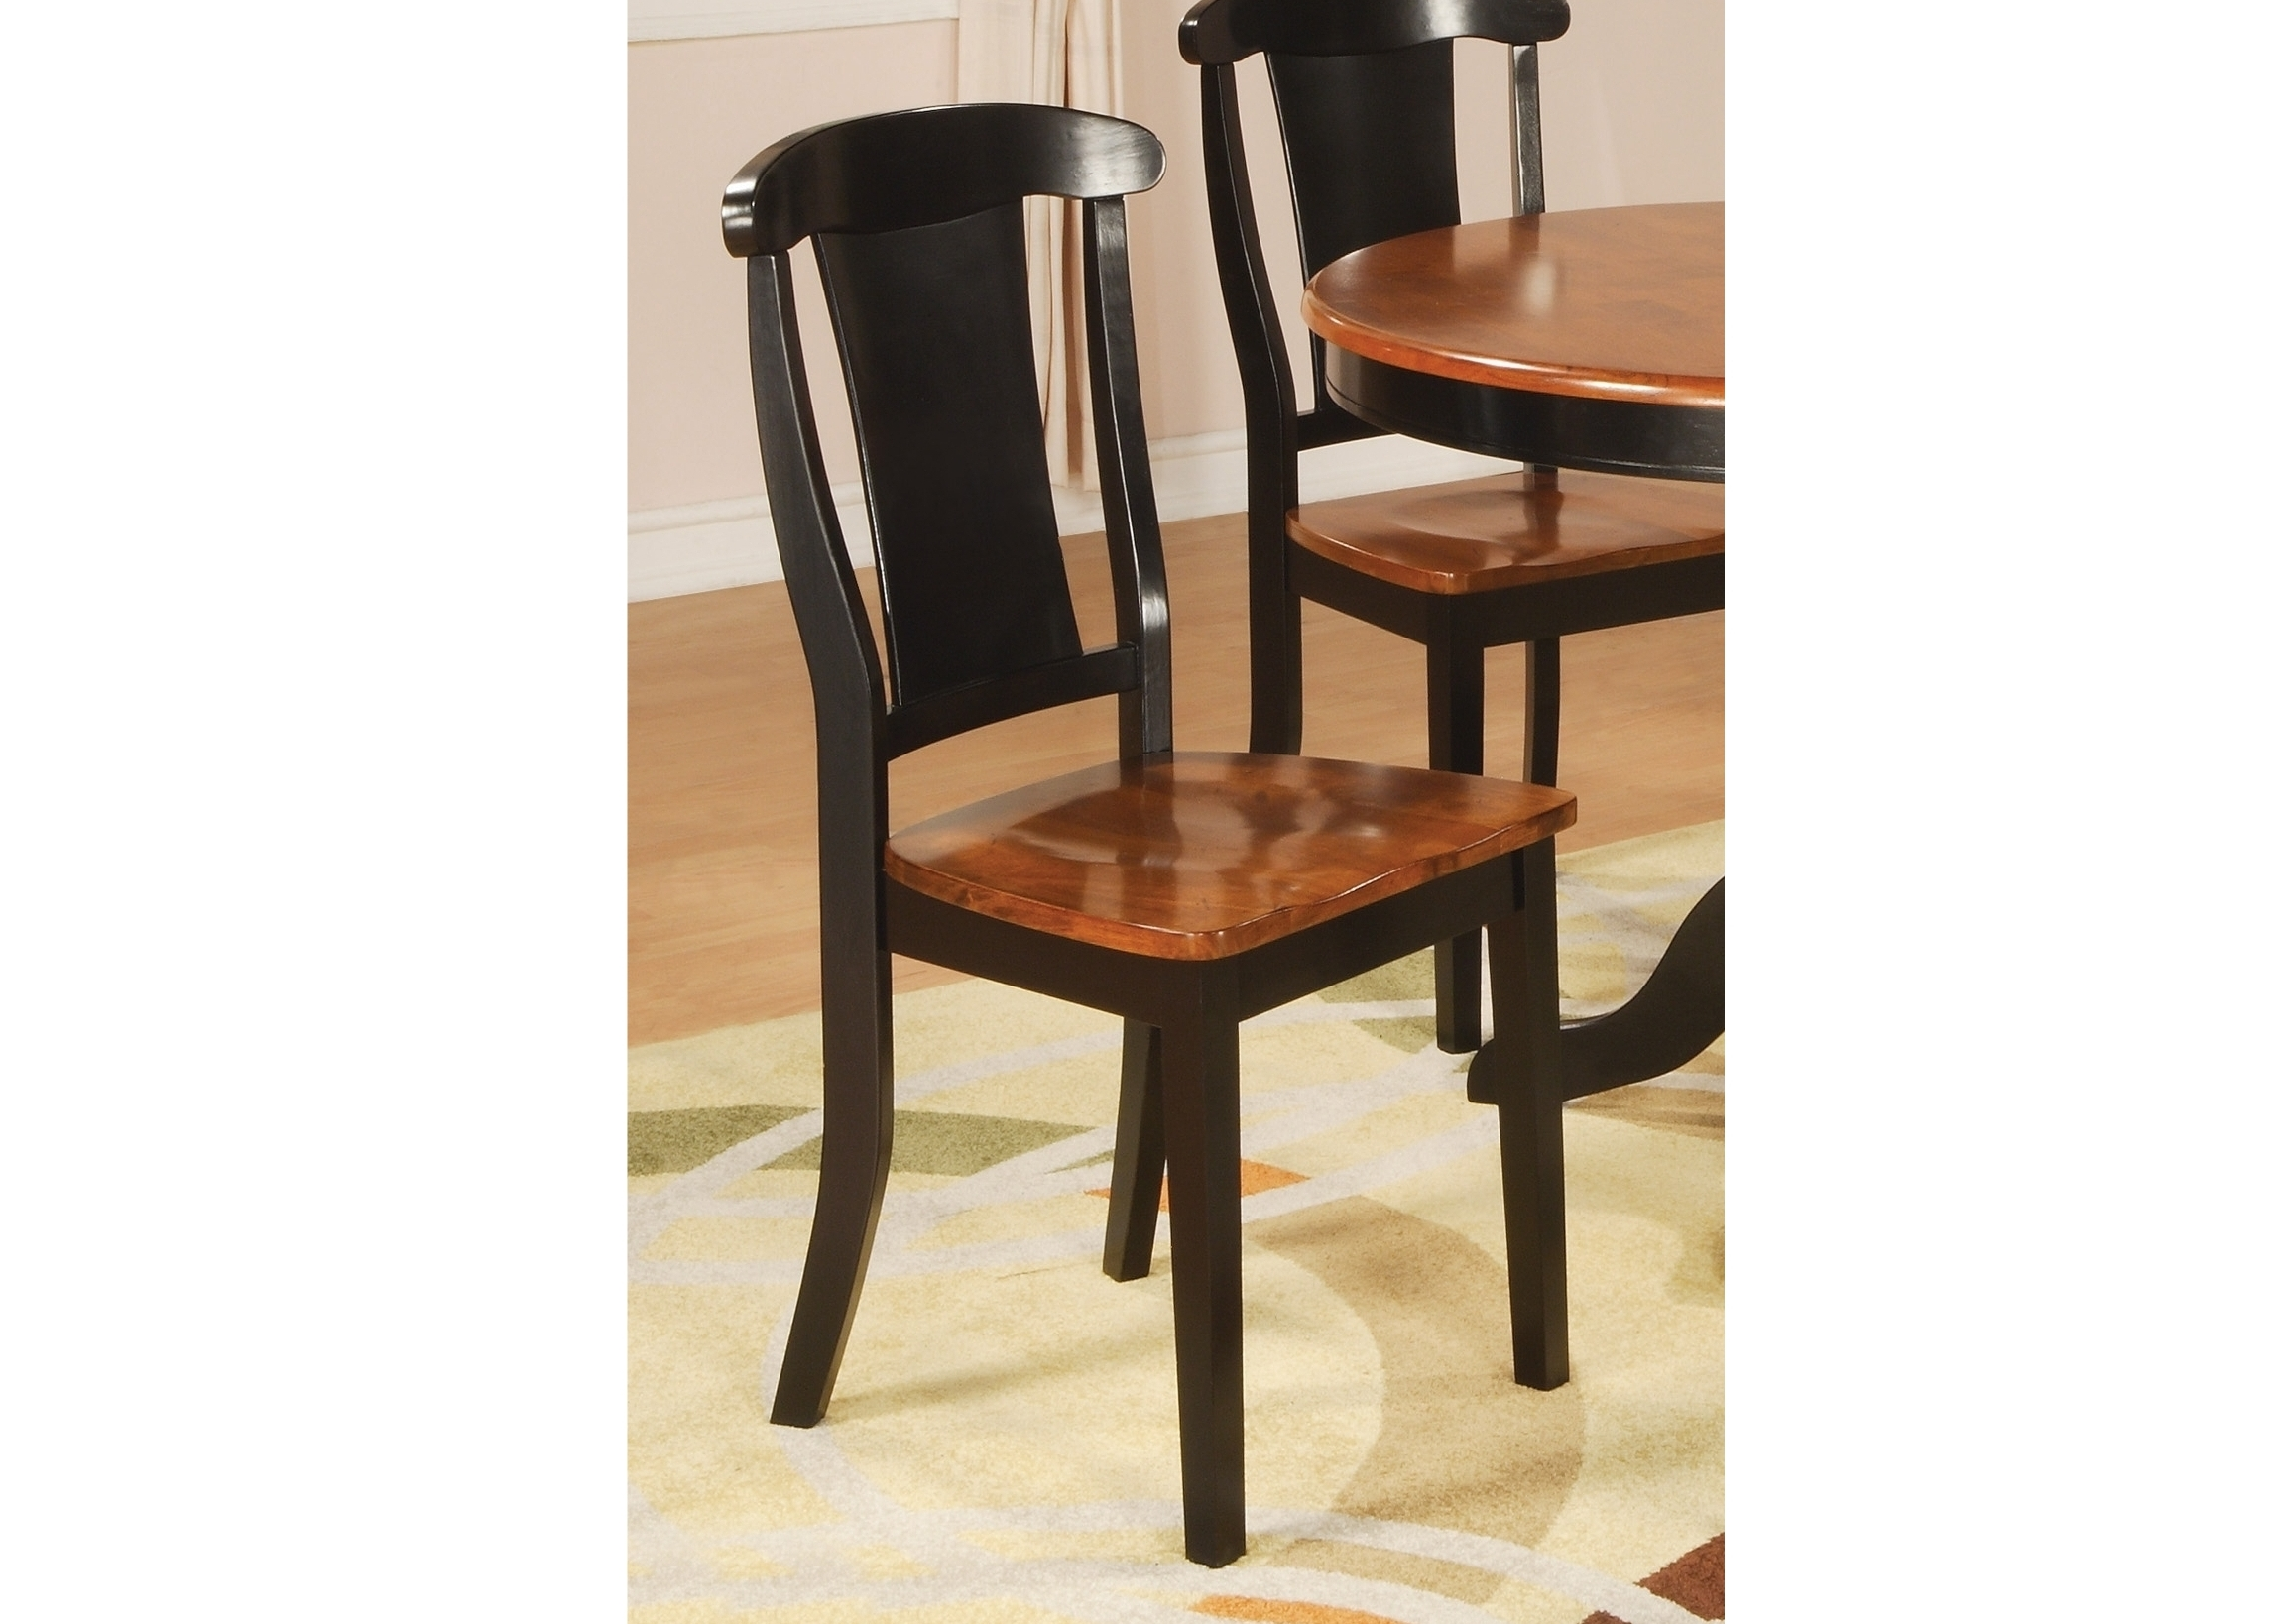 GD-4816 DINING CHAIR 2